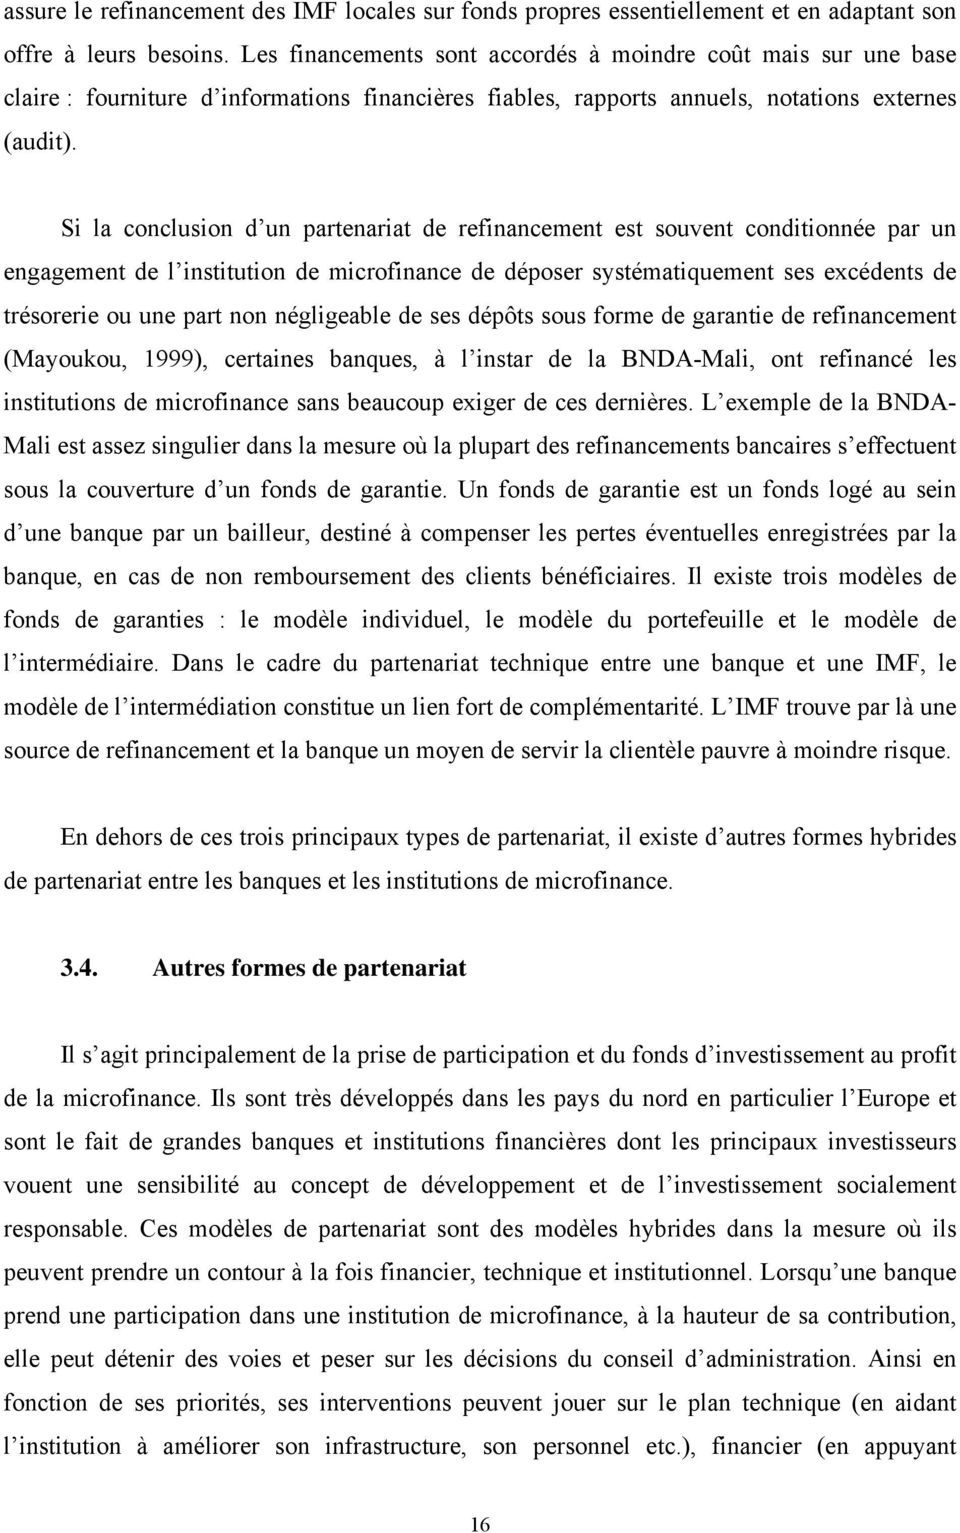 Si la conclusion d un partenariat de refinancement est souvent conditionnée par un engagement de l institution de microfinance de déposer systématiquement ses excédents de trésorerie ou une part non